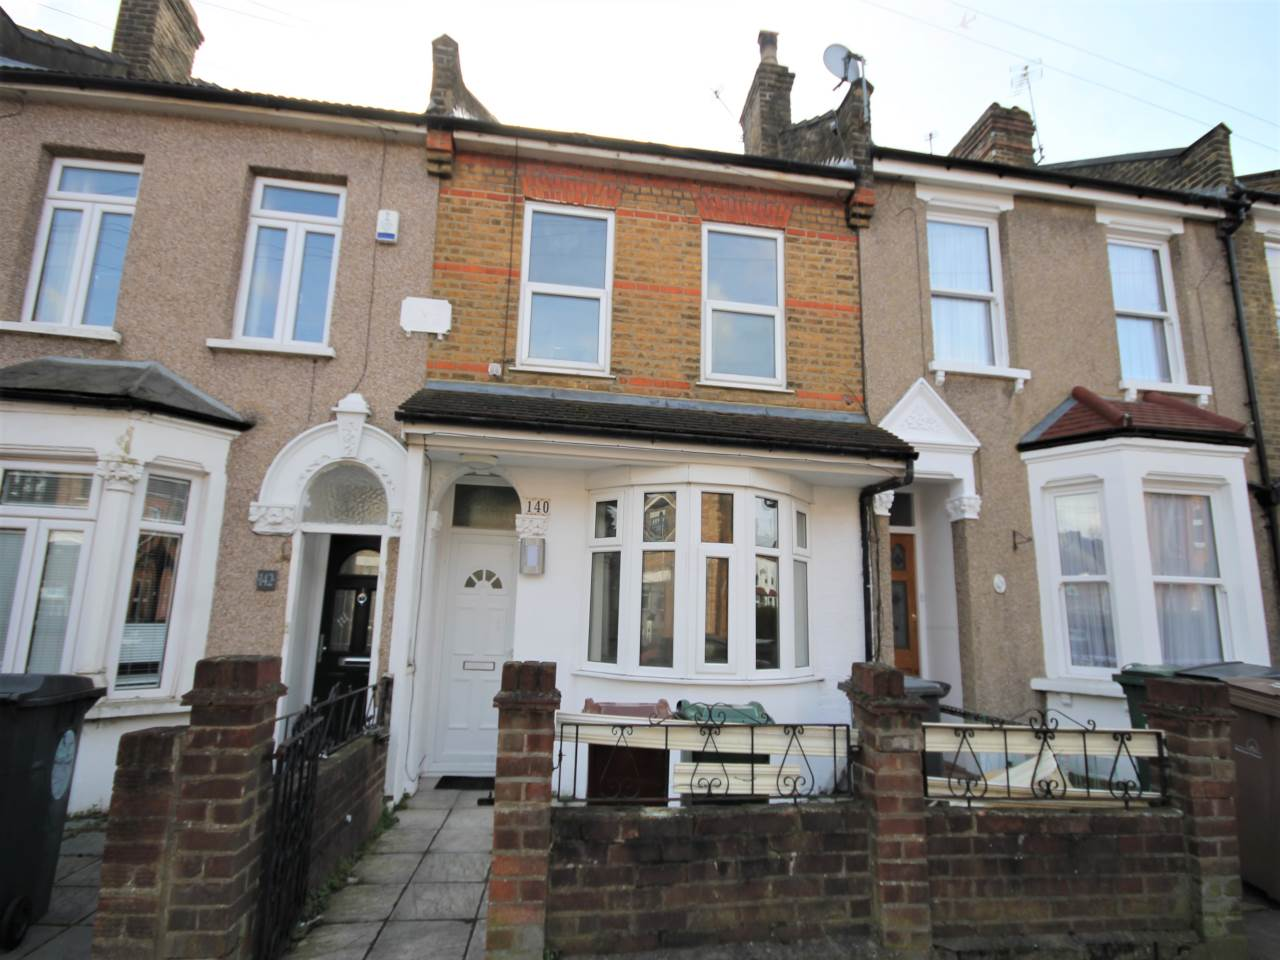 6 bed house to rent in Walthamstow, E17